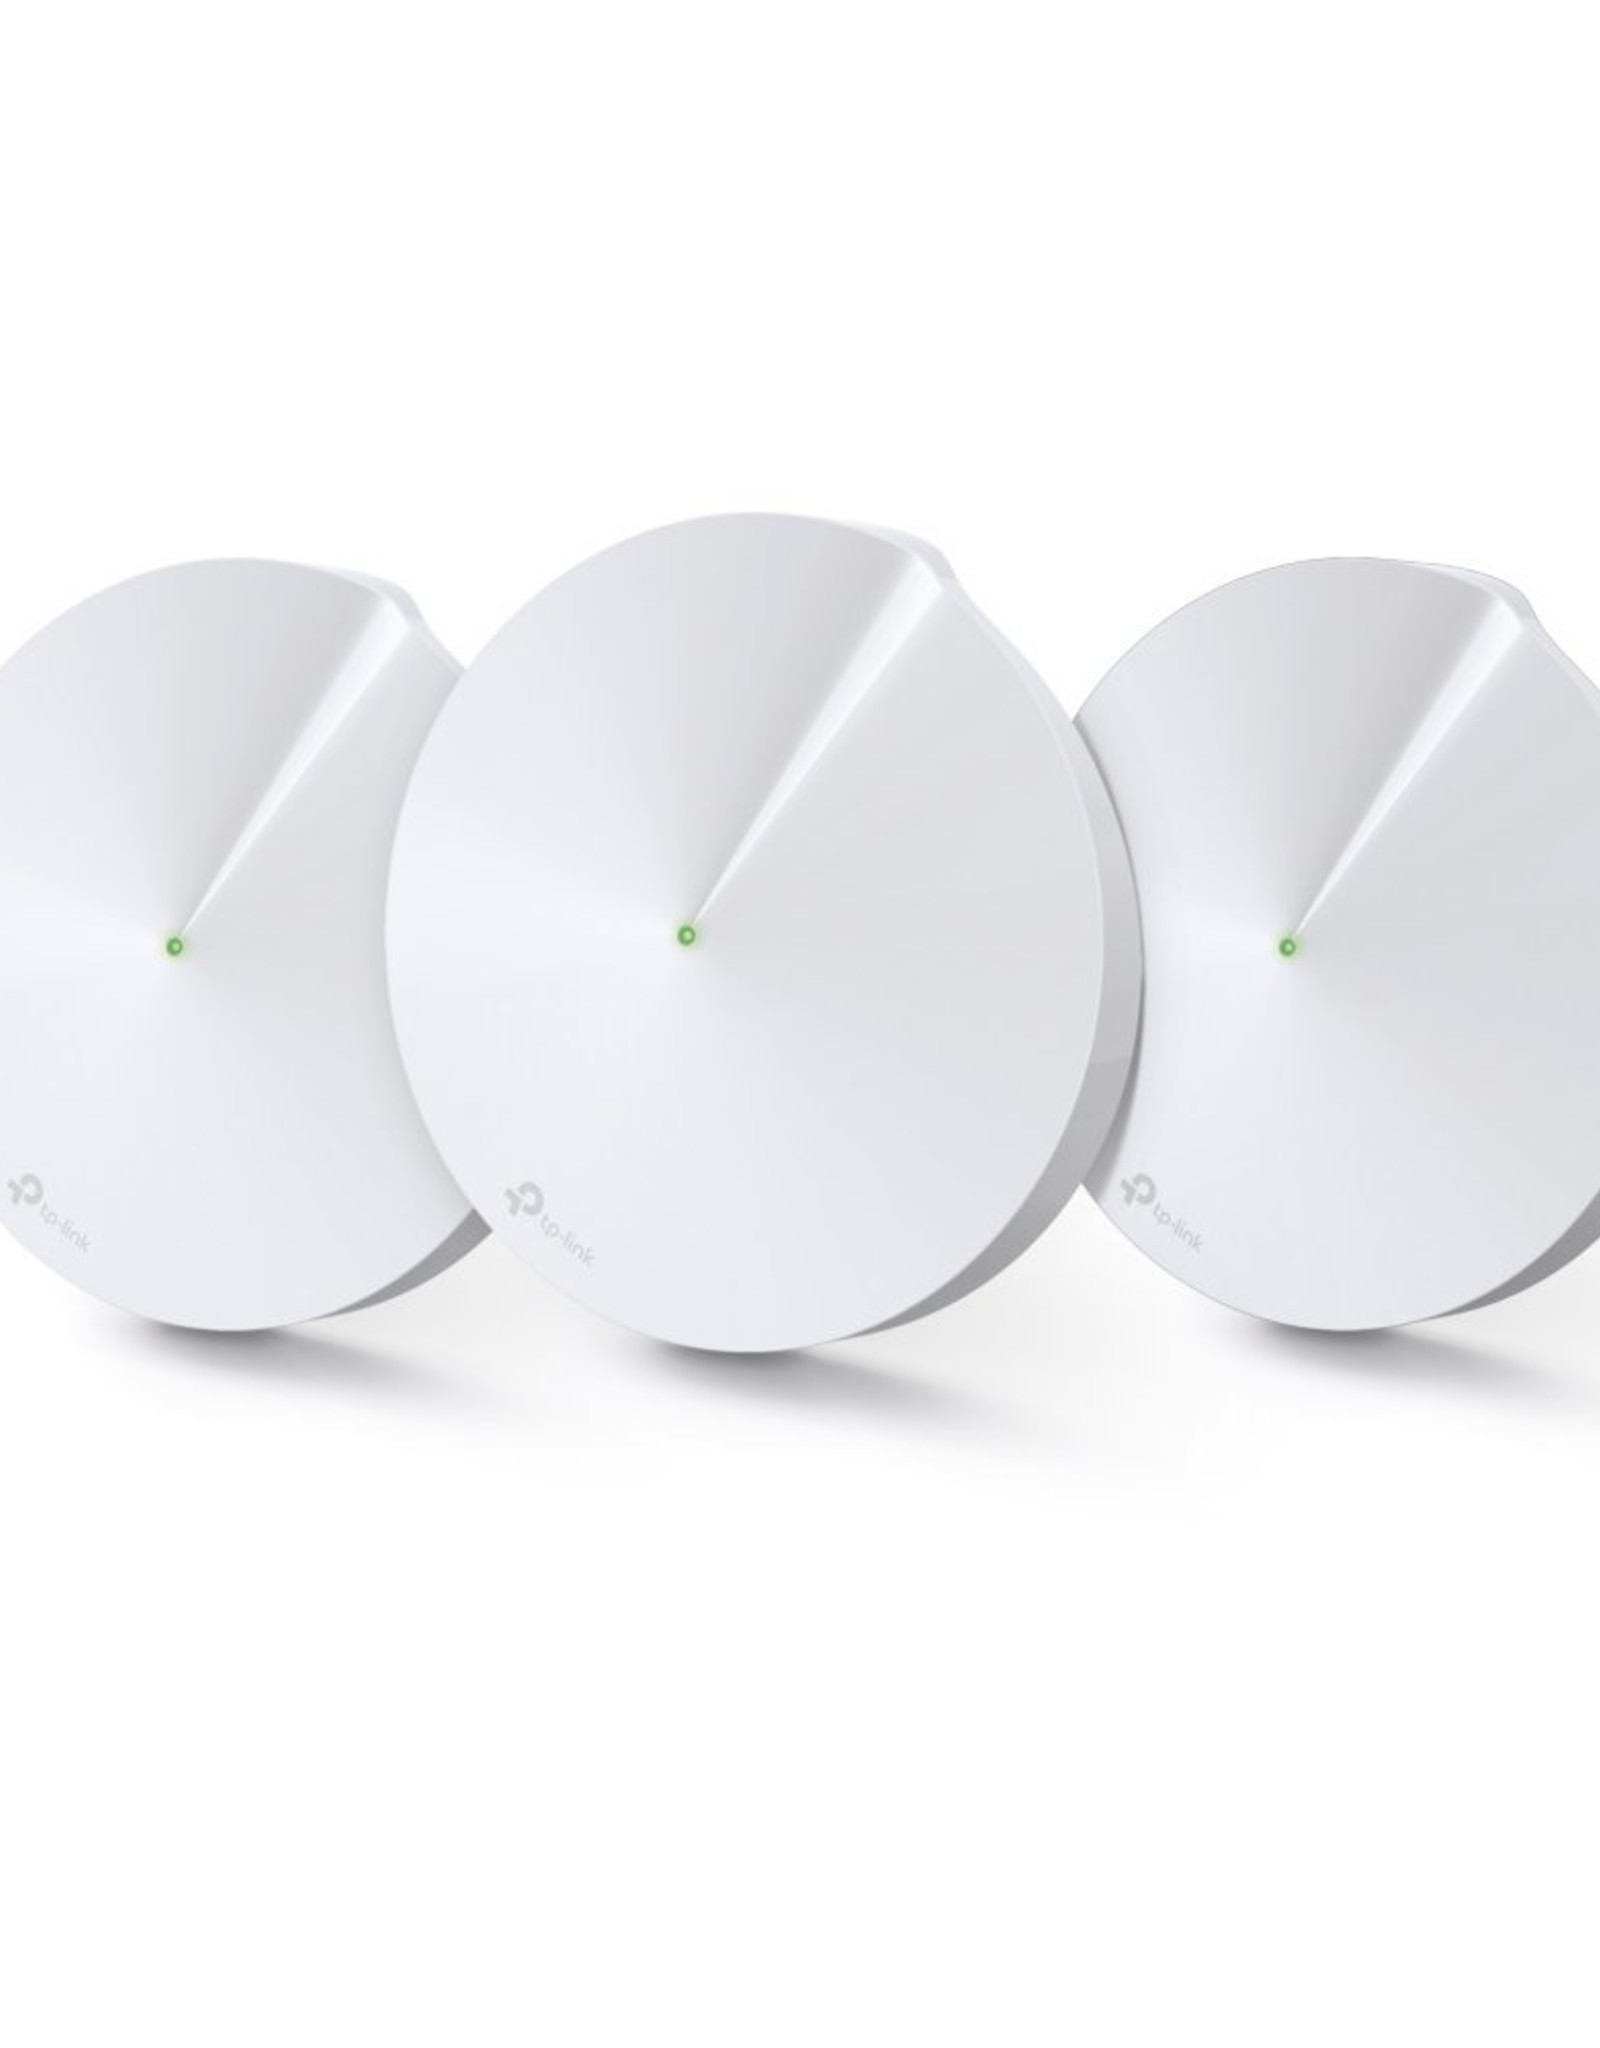 AC1200 Whole Home Mesh Wifi-systeem Deco m9 (3-pack)